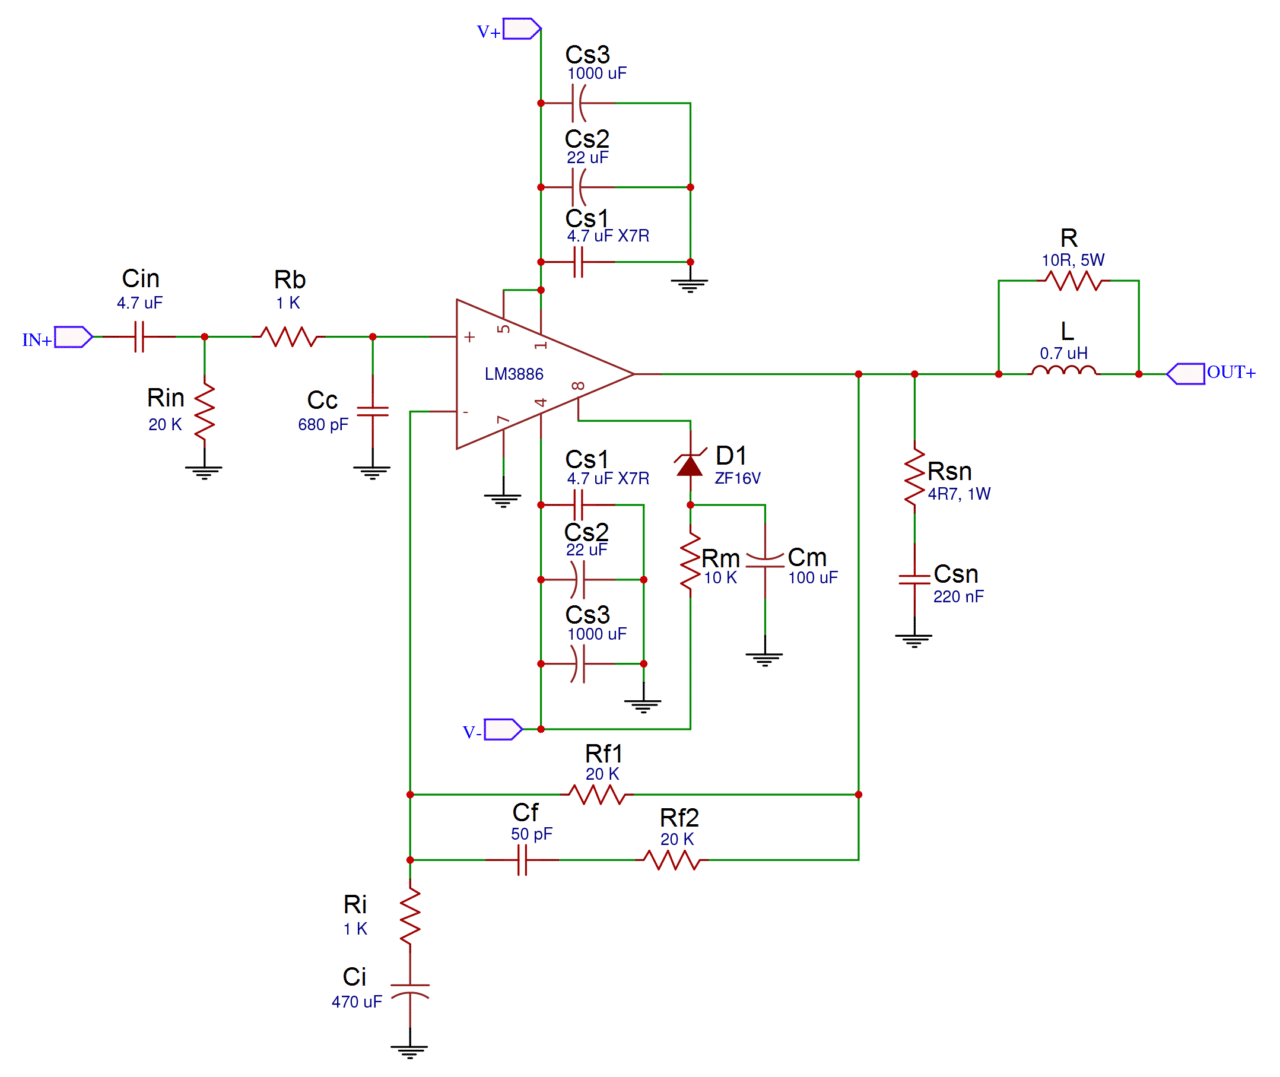 A Complete Guide To Design And Build Hi Fi Lm3886 Amplifier Example Ac Transistor Circuit Analysis Of The Mid Frequency Response Find Values For Components In Ill Be Using Schematic Below Its Basically Same As One Datasheet